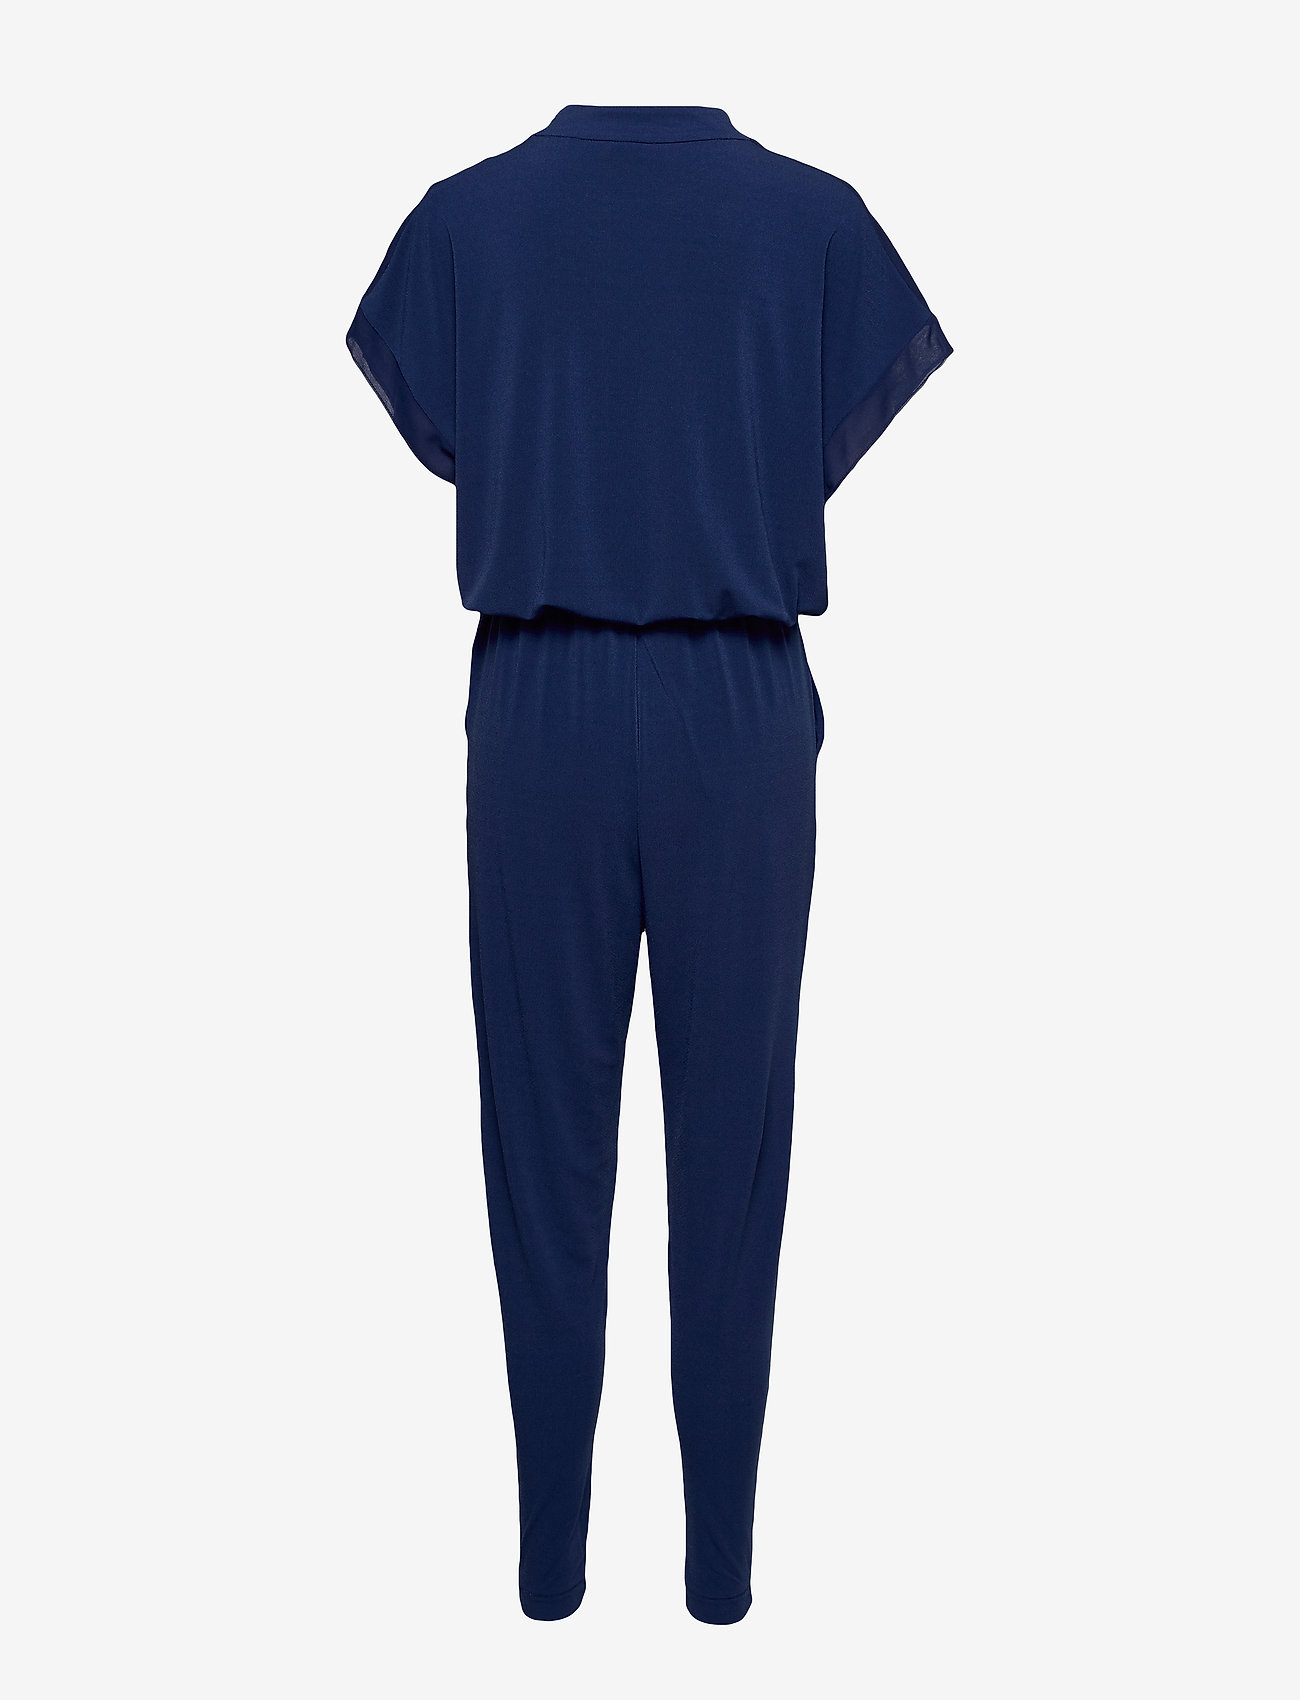 Isina (Ultramarine) (1499.40 kr) - By Malene Birger